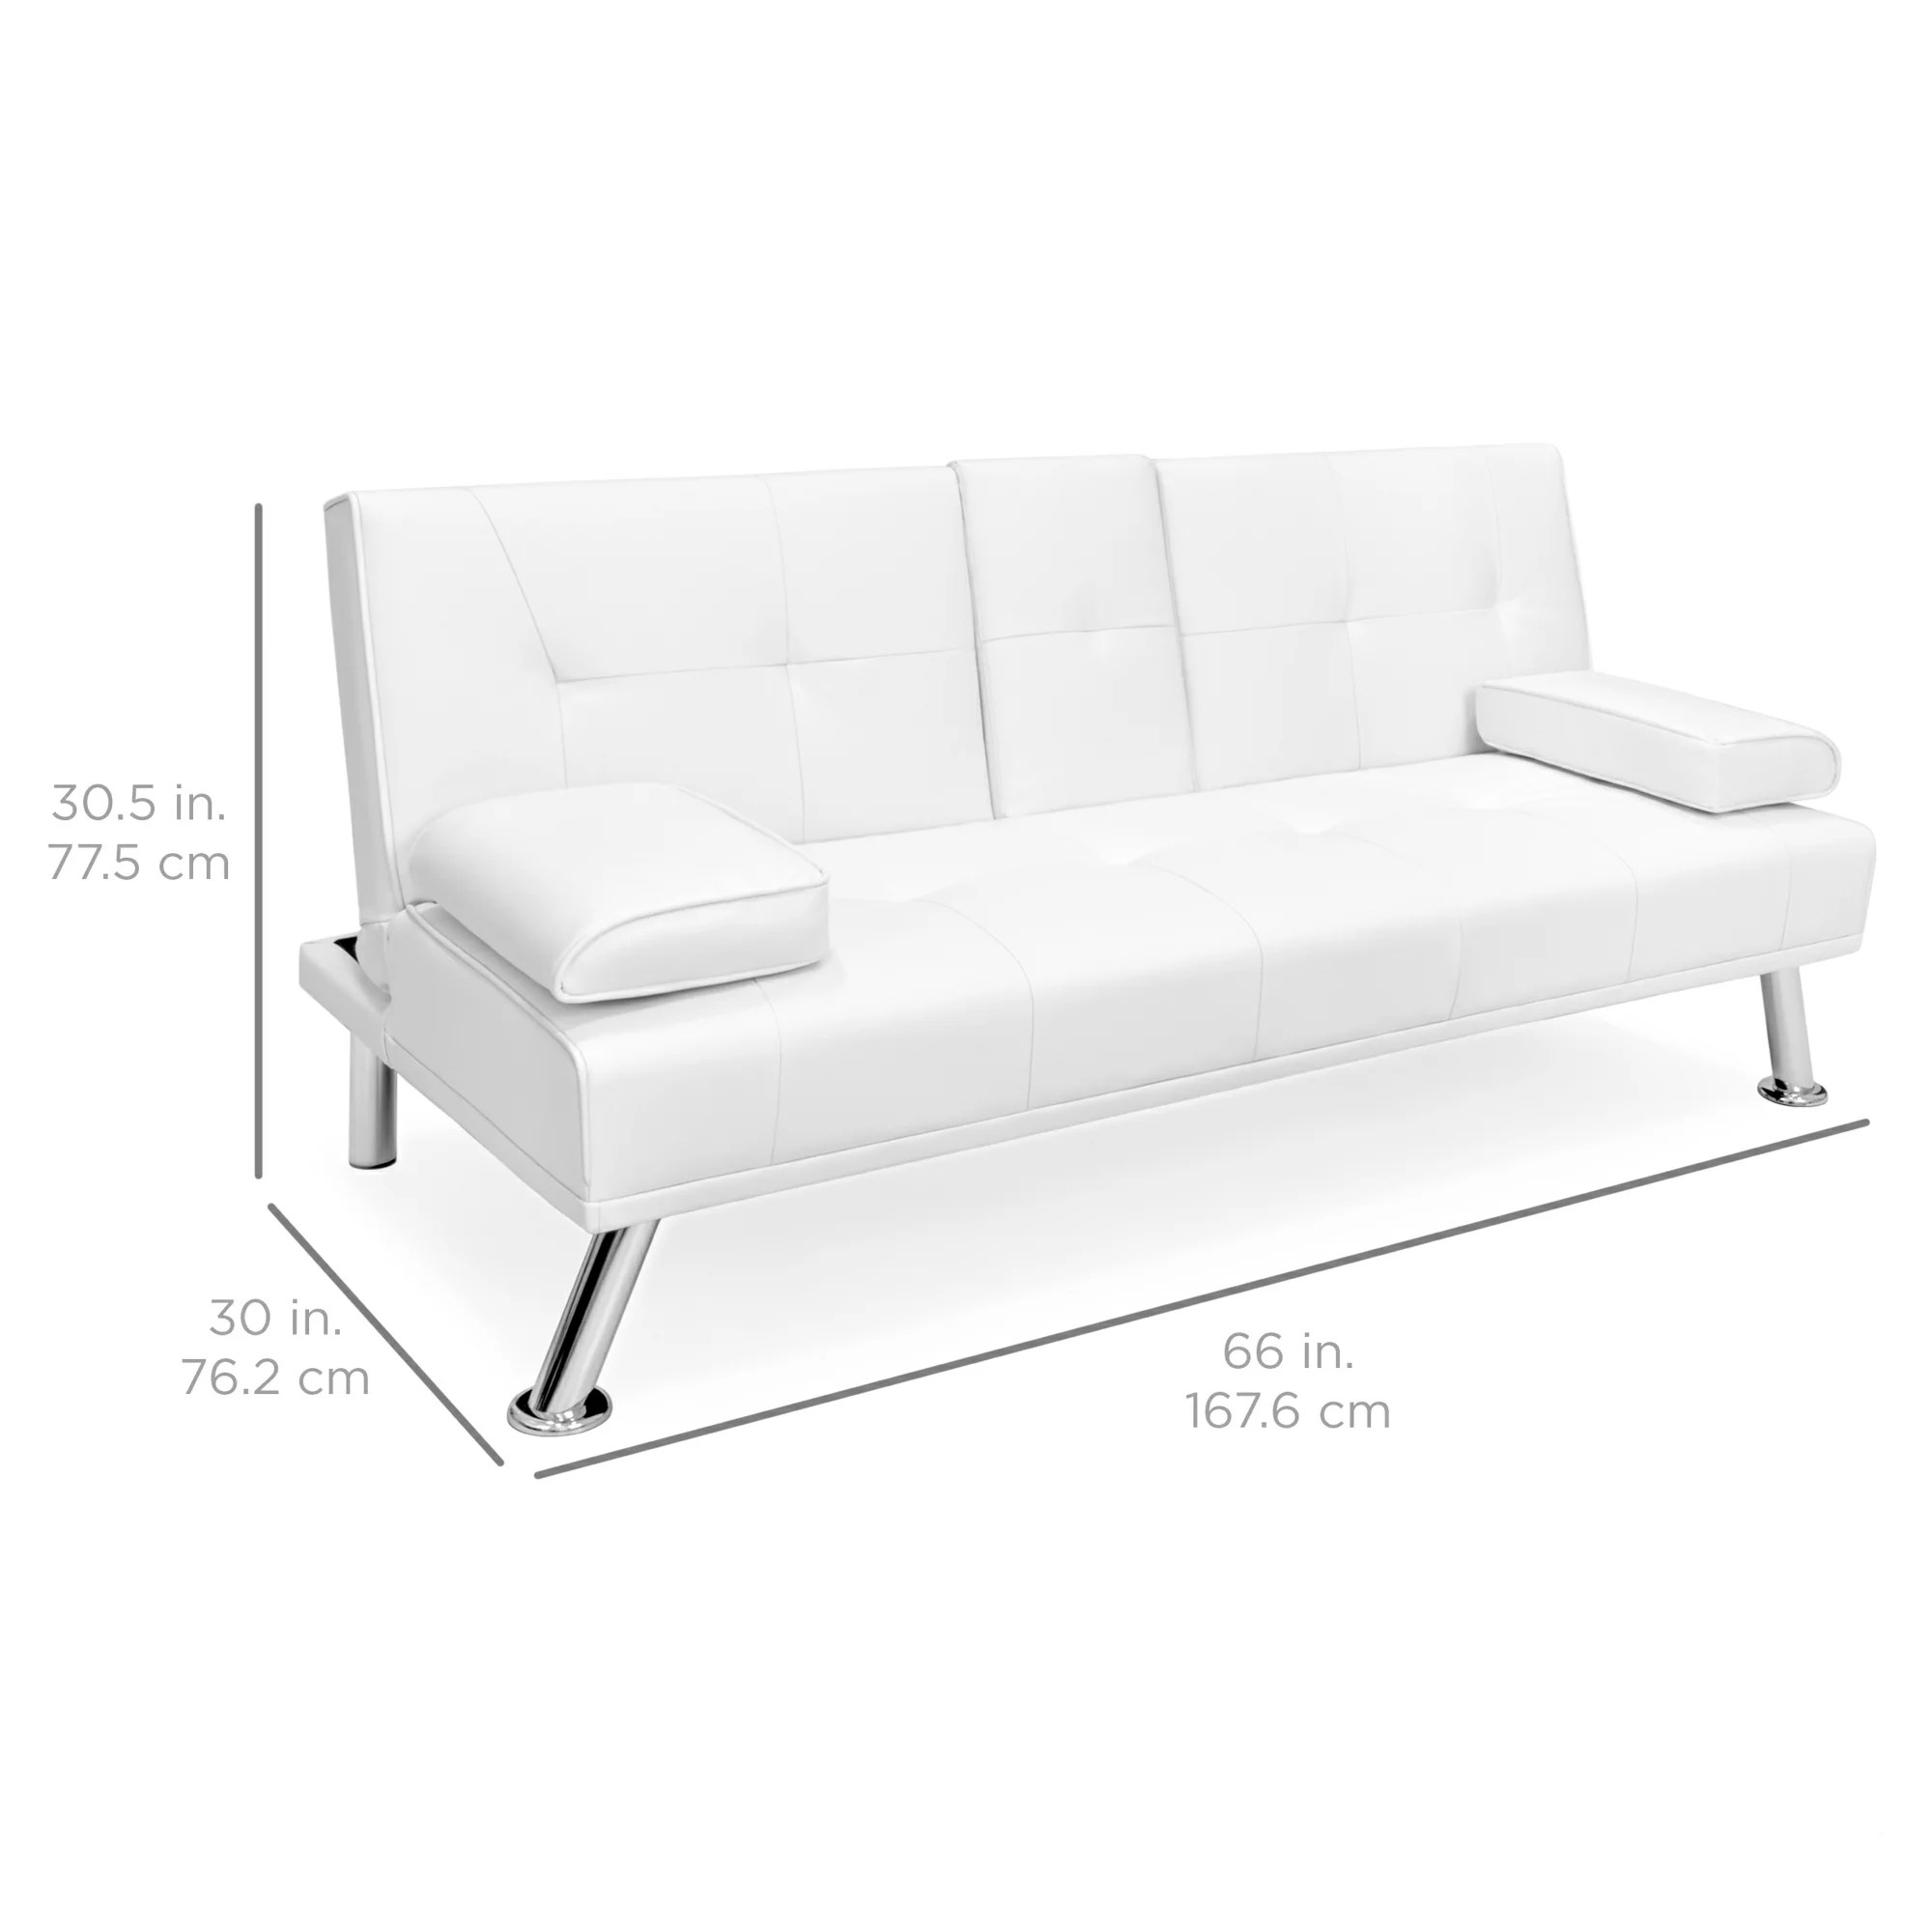 Futon Convertible 1 Place Best Choice Products Modern Faux Leather Convertible Futon Sofa Bed Recliner Couch W Metal Legs 2 Cup Holders White